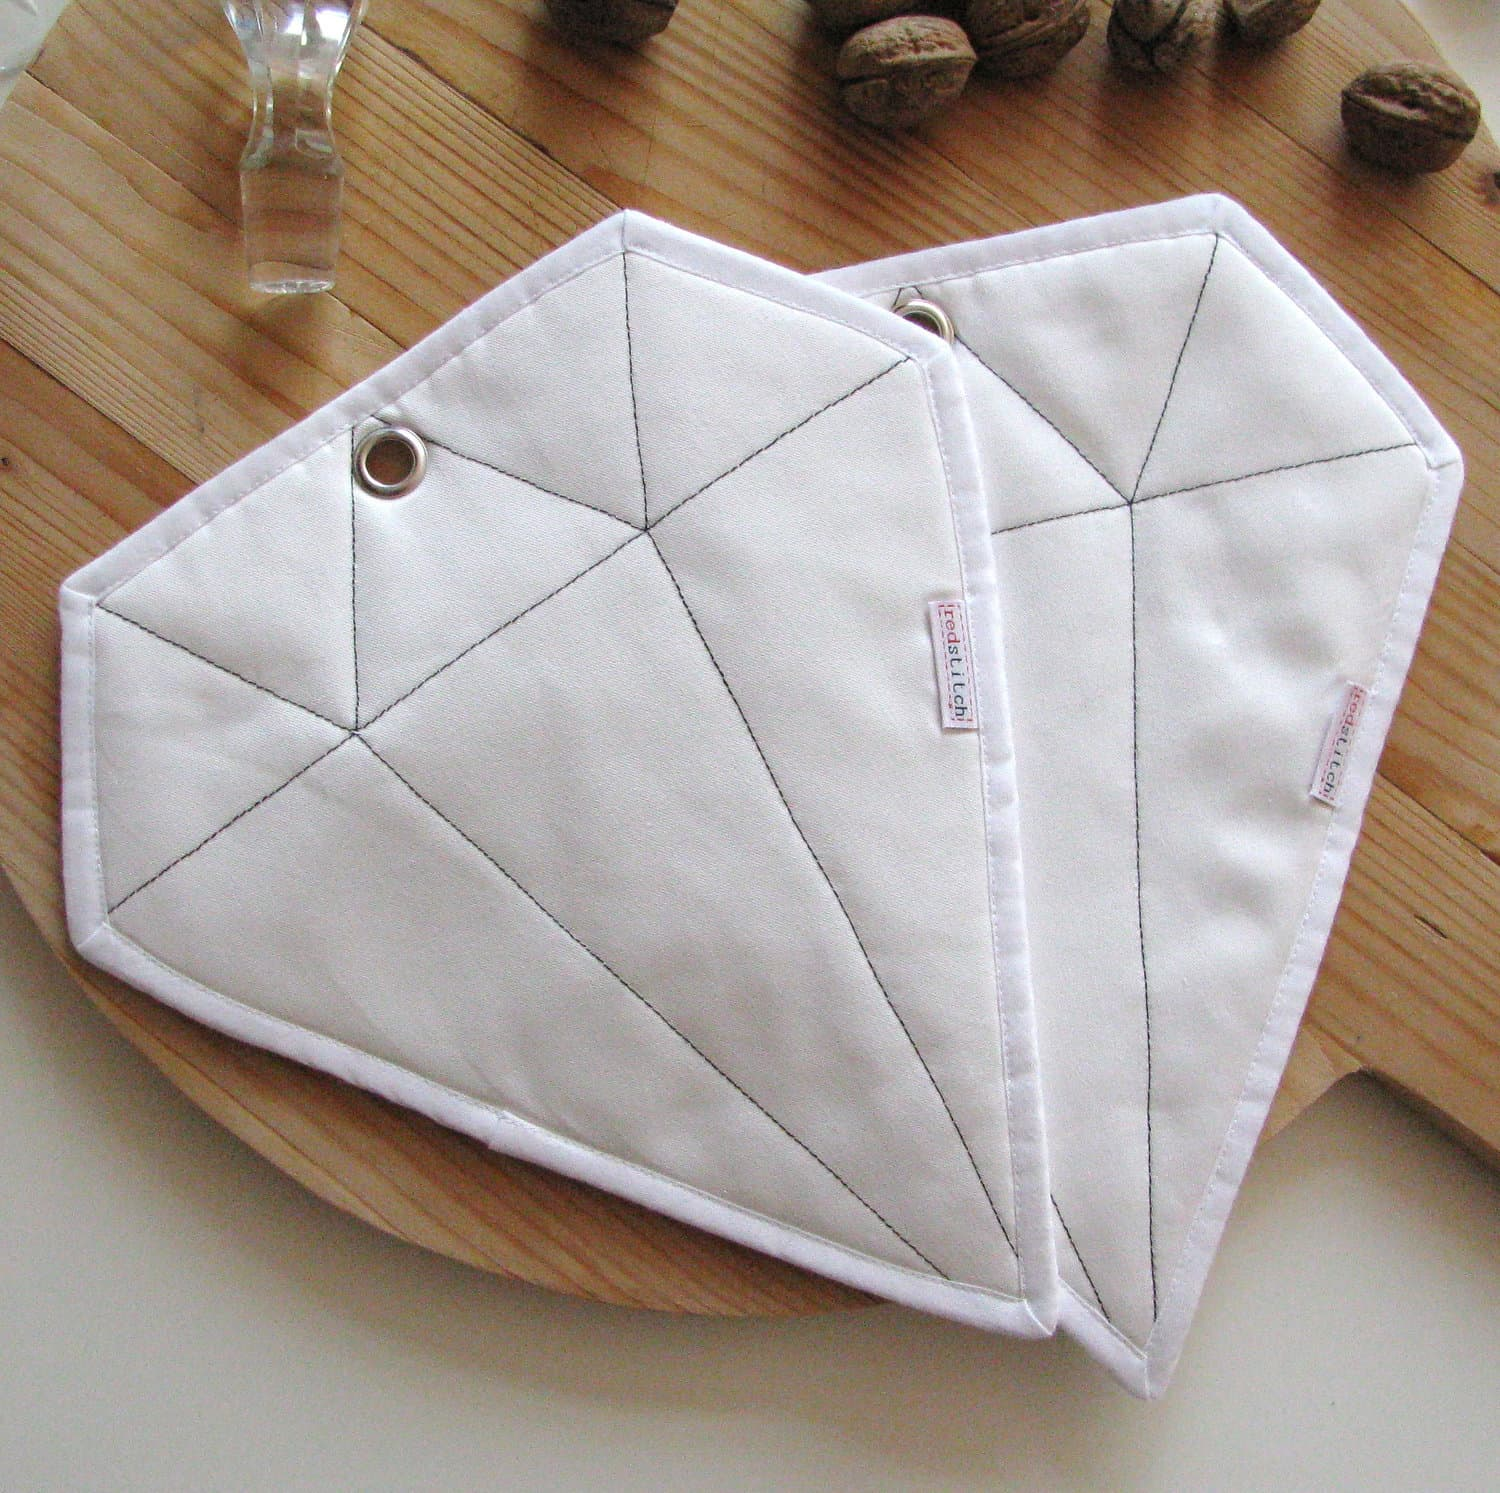 Red Stitch: Super Cute Handmade Potholders from Holland: gallery image 2